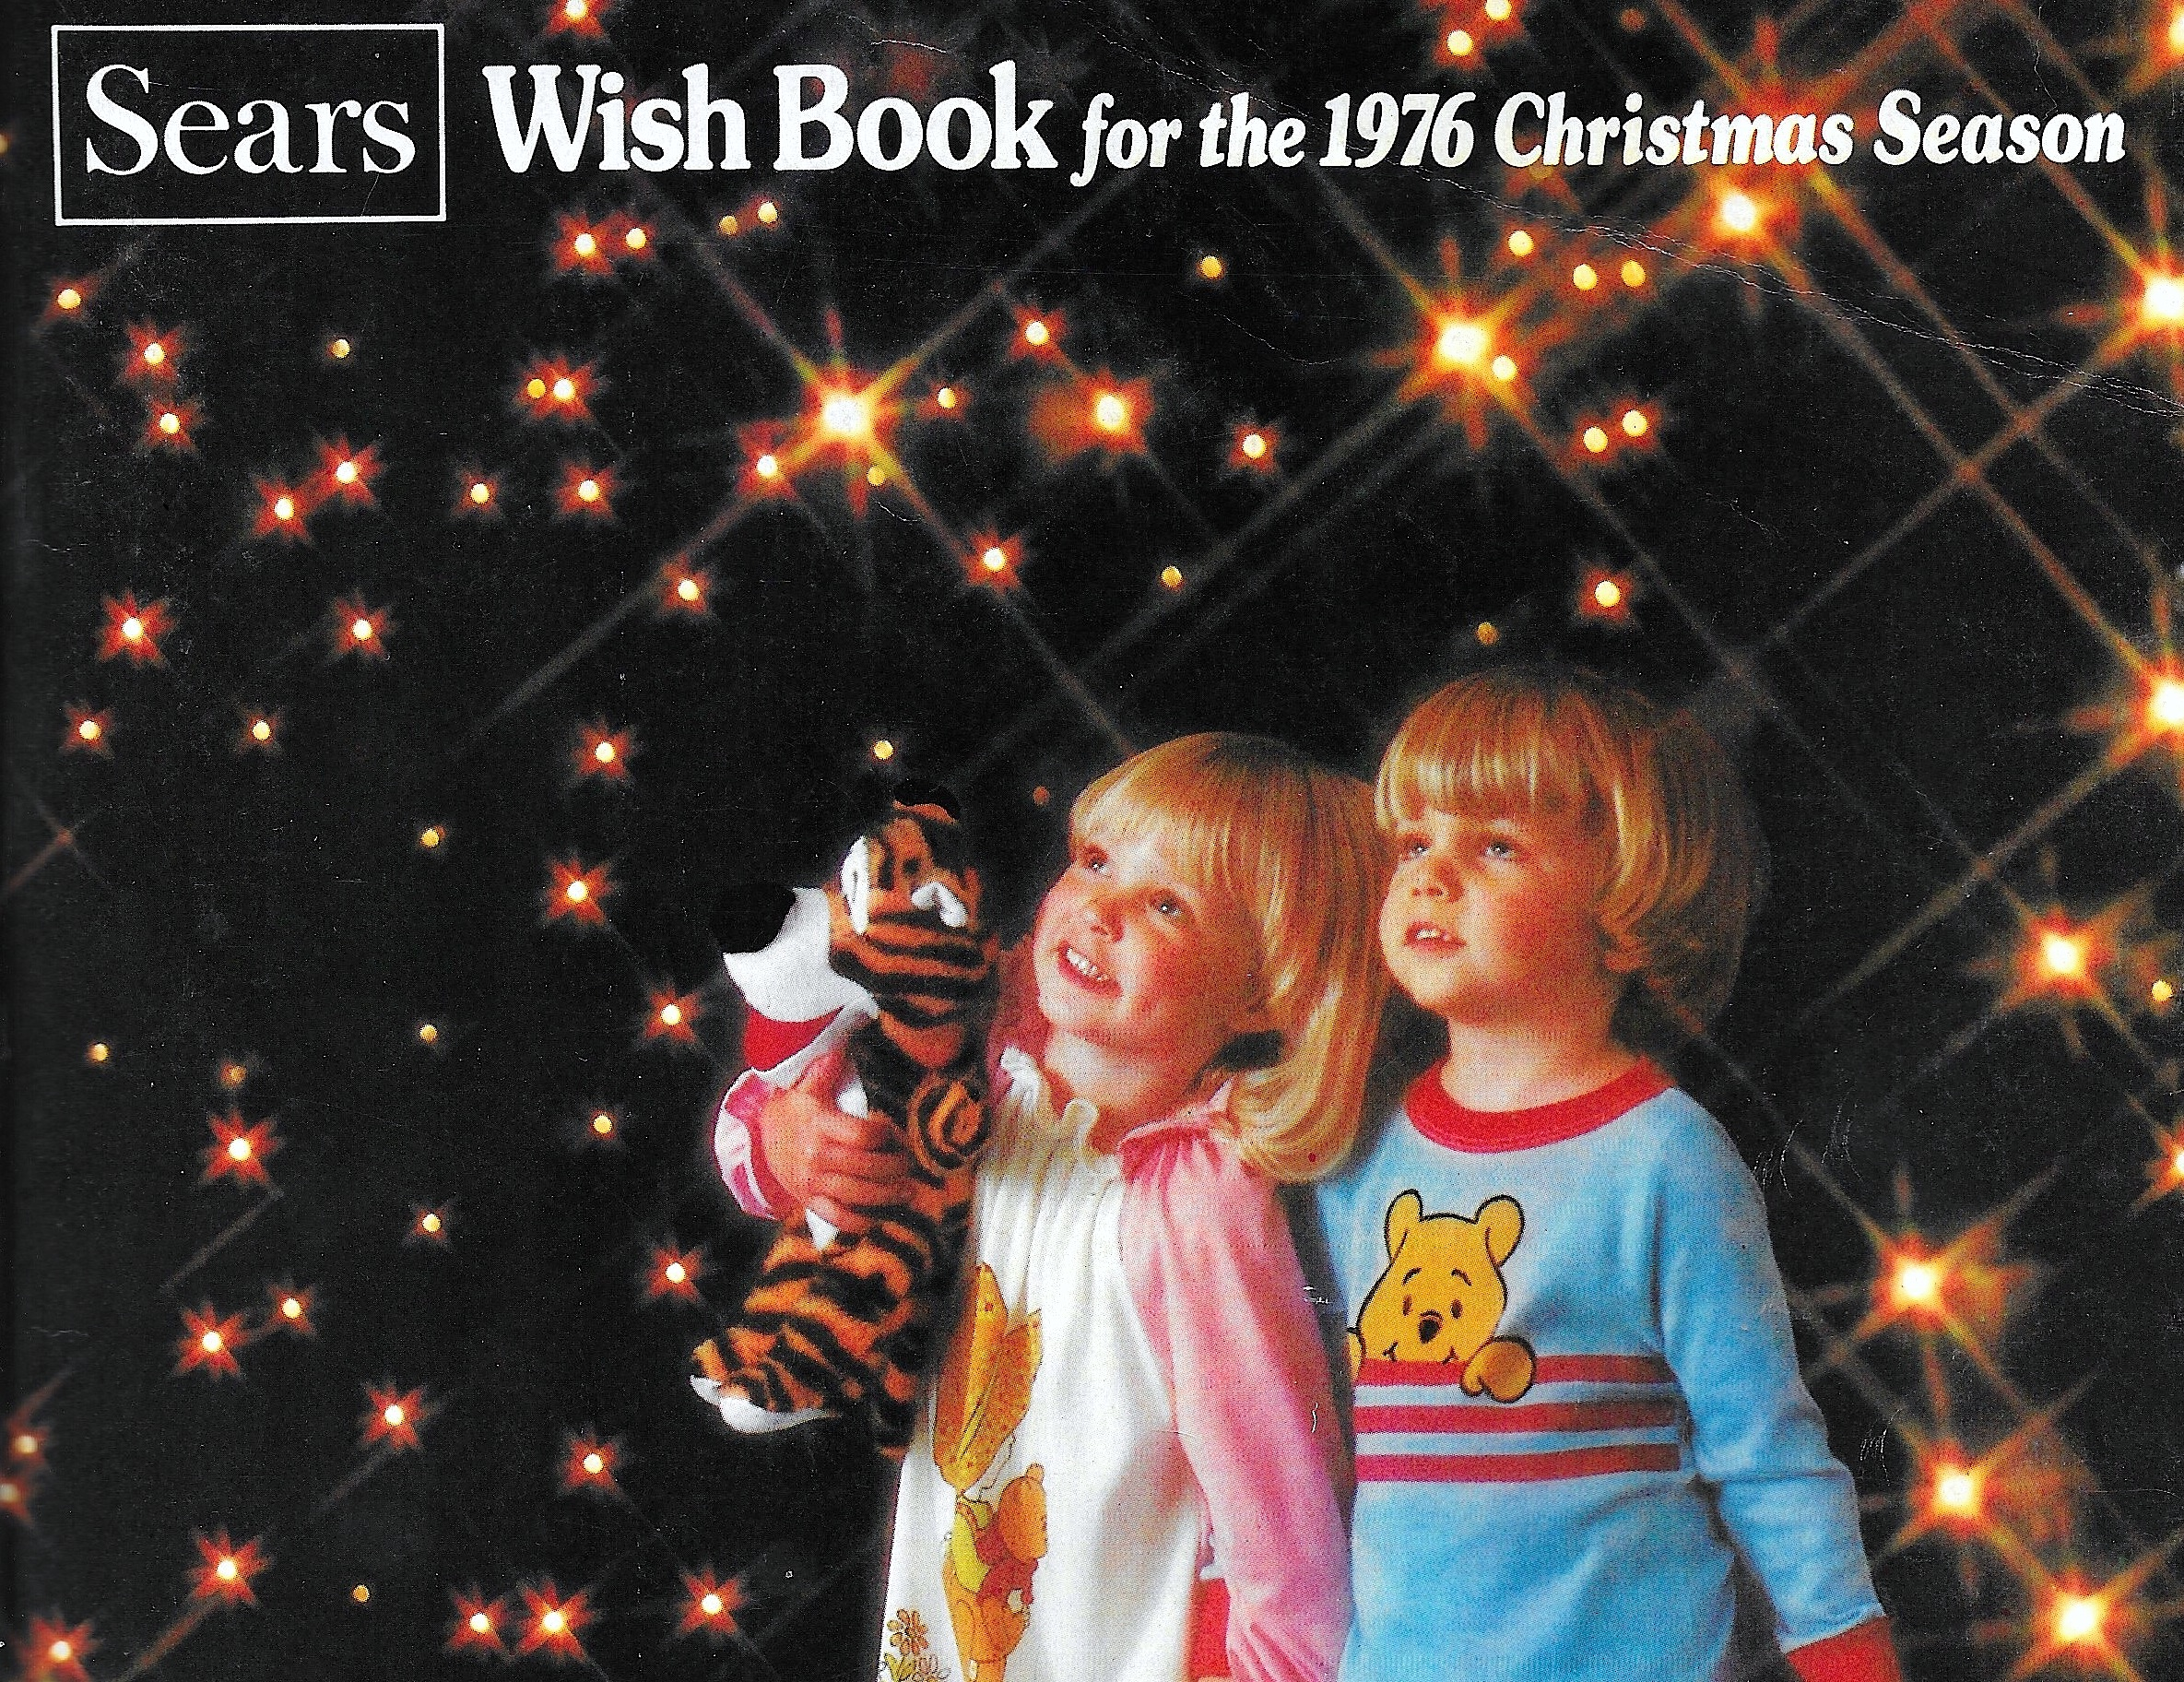 literature of desire the 1976 sears christmas wish book - Sears Christmas Catalog